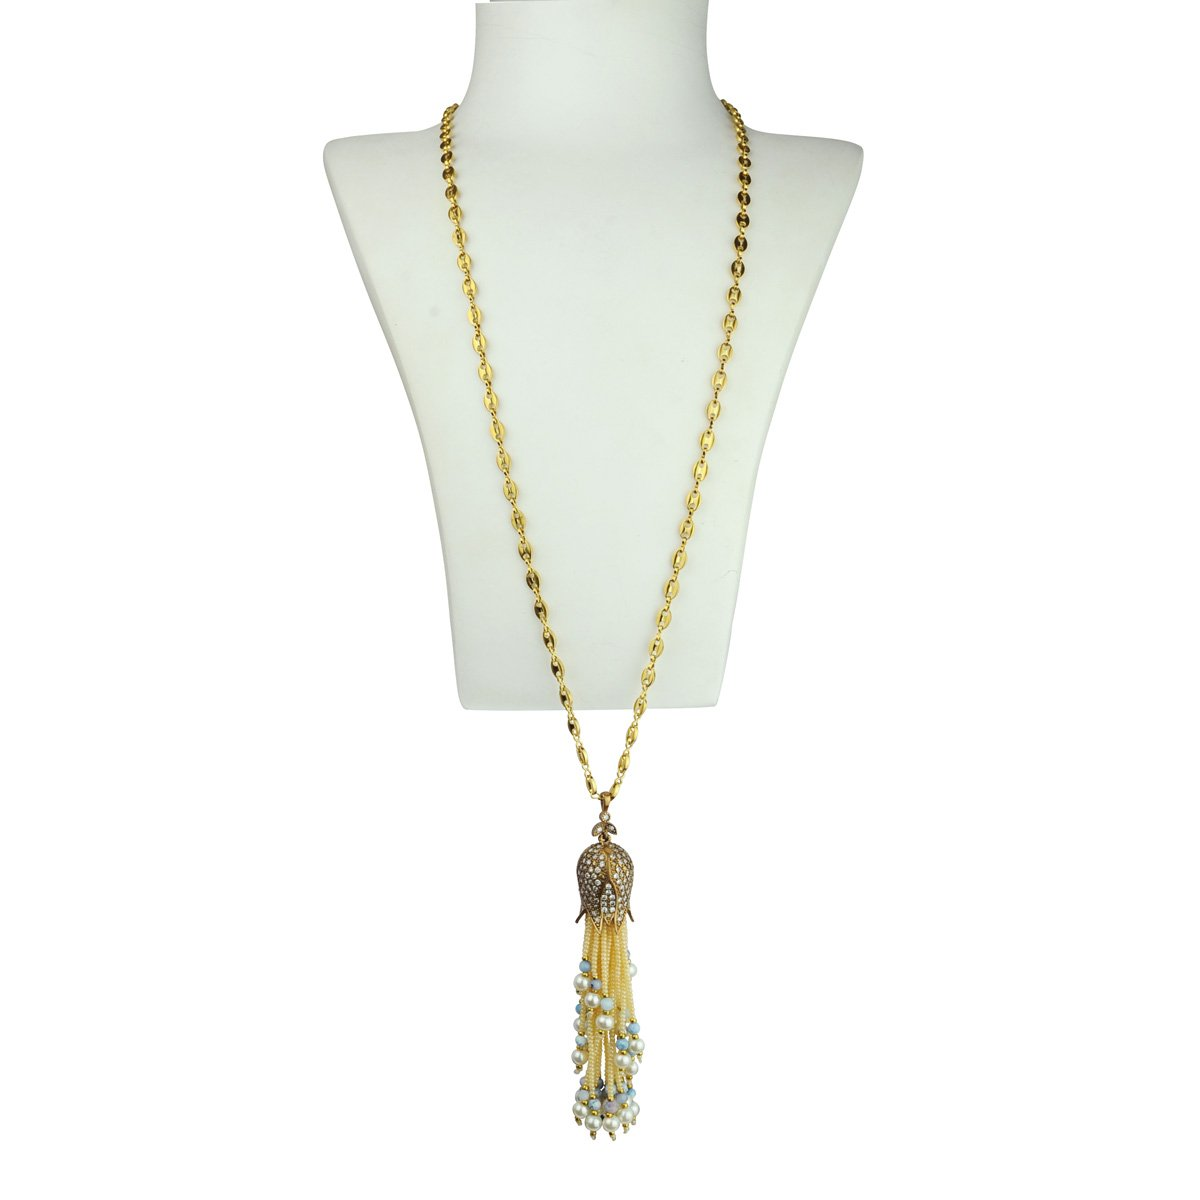 long chain necklace with a pendant tassel katerina psoma